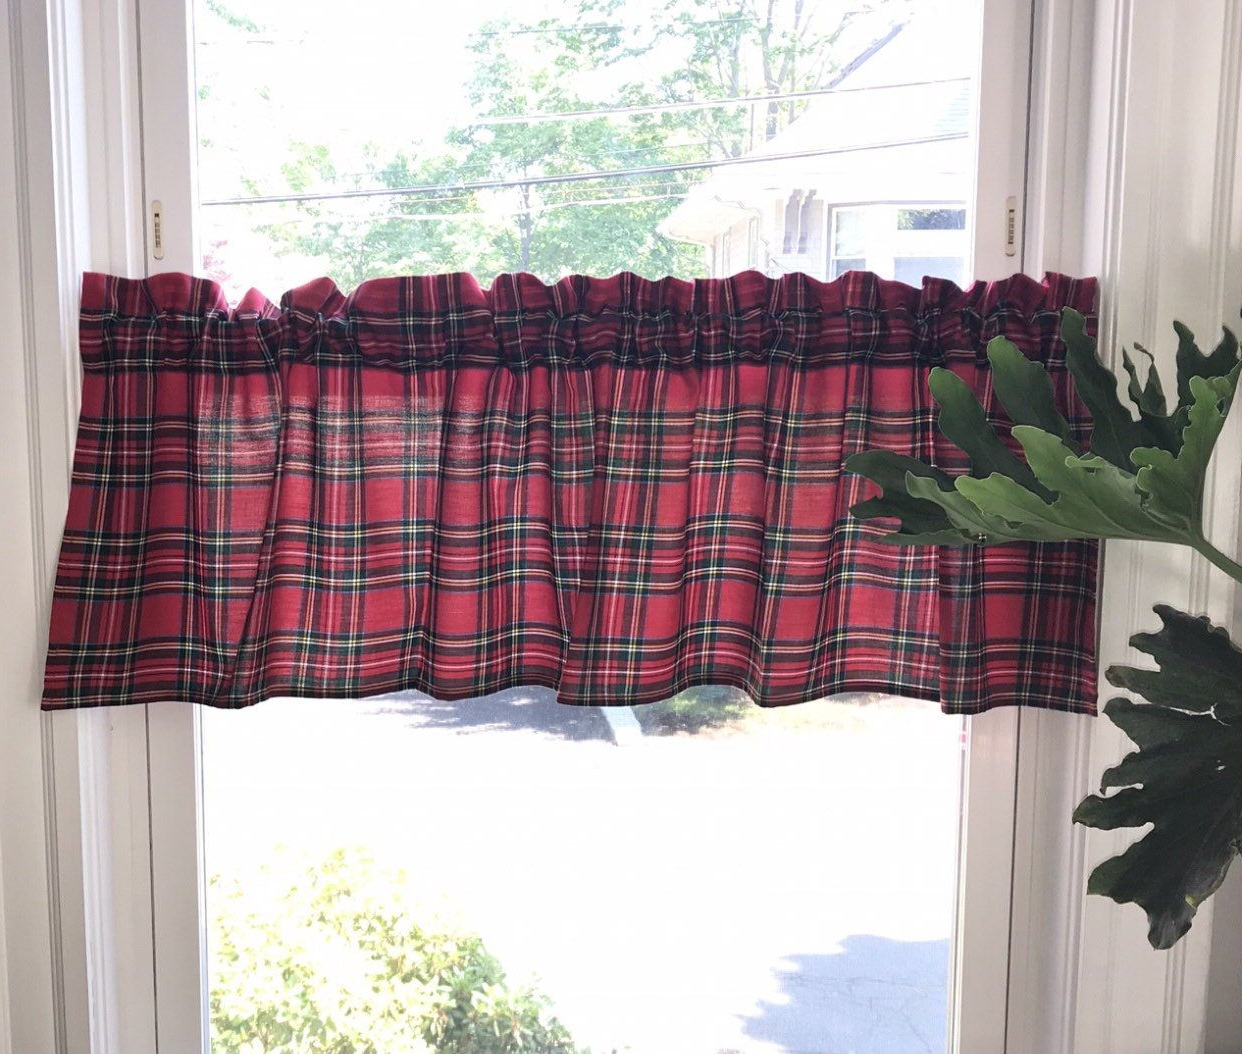 2020 Lodge Plaid 3 Piece Kitchen Curtain Tier And Valance Sets With Regard To Christmas Royal Stewart Tartan Valance, Red Green Plaid (View 15 of 20)